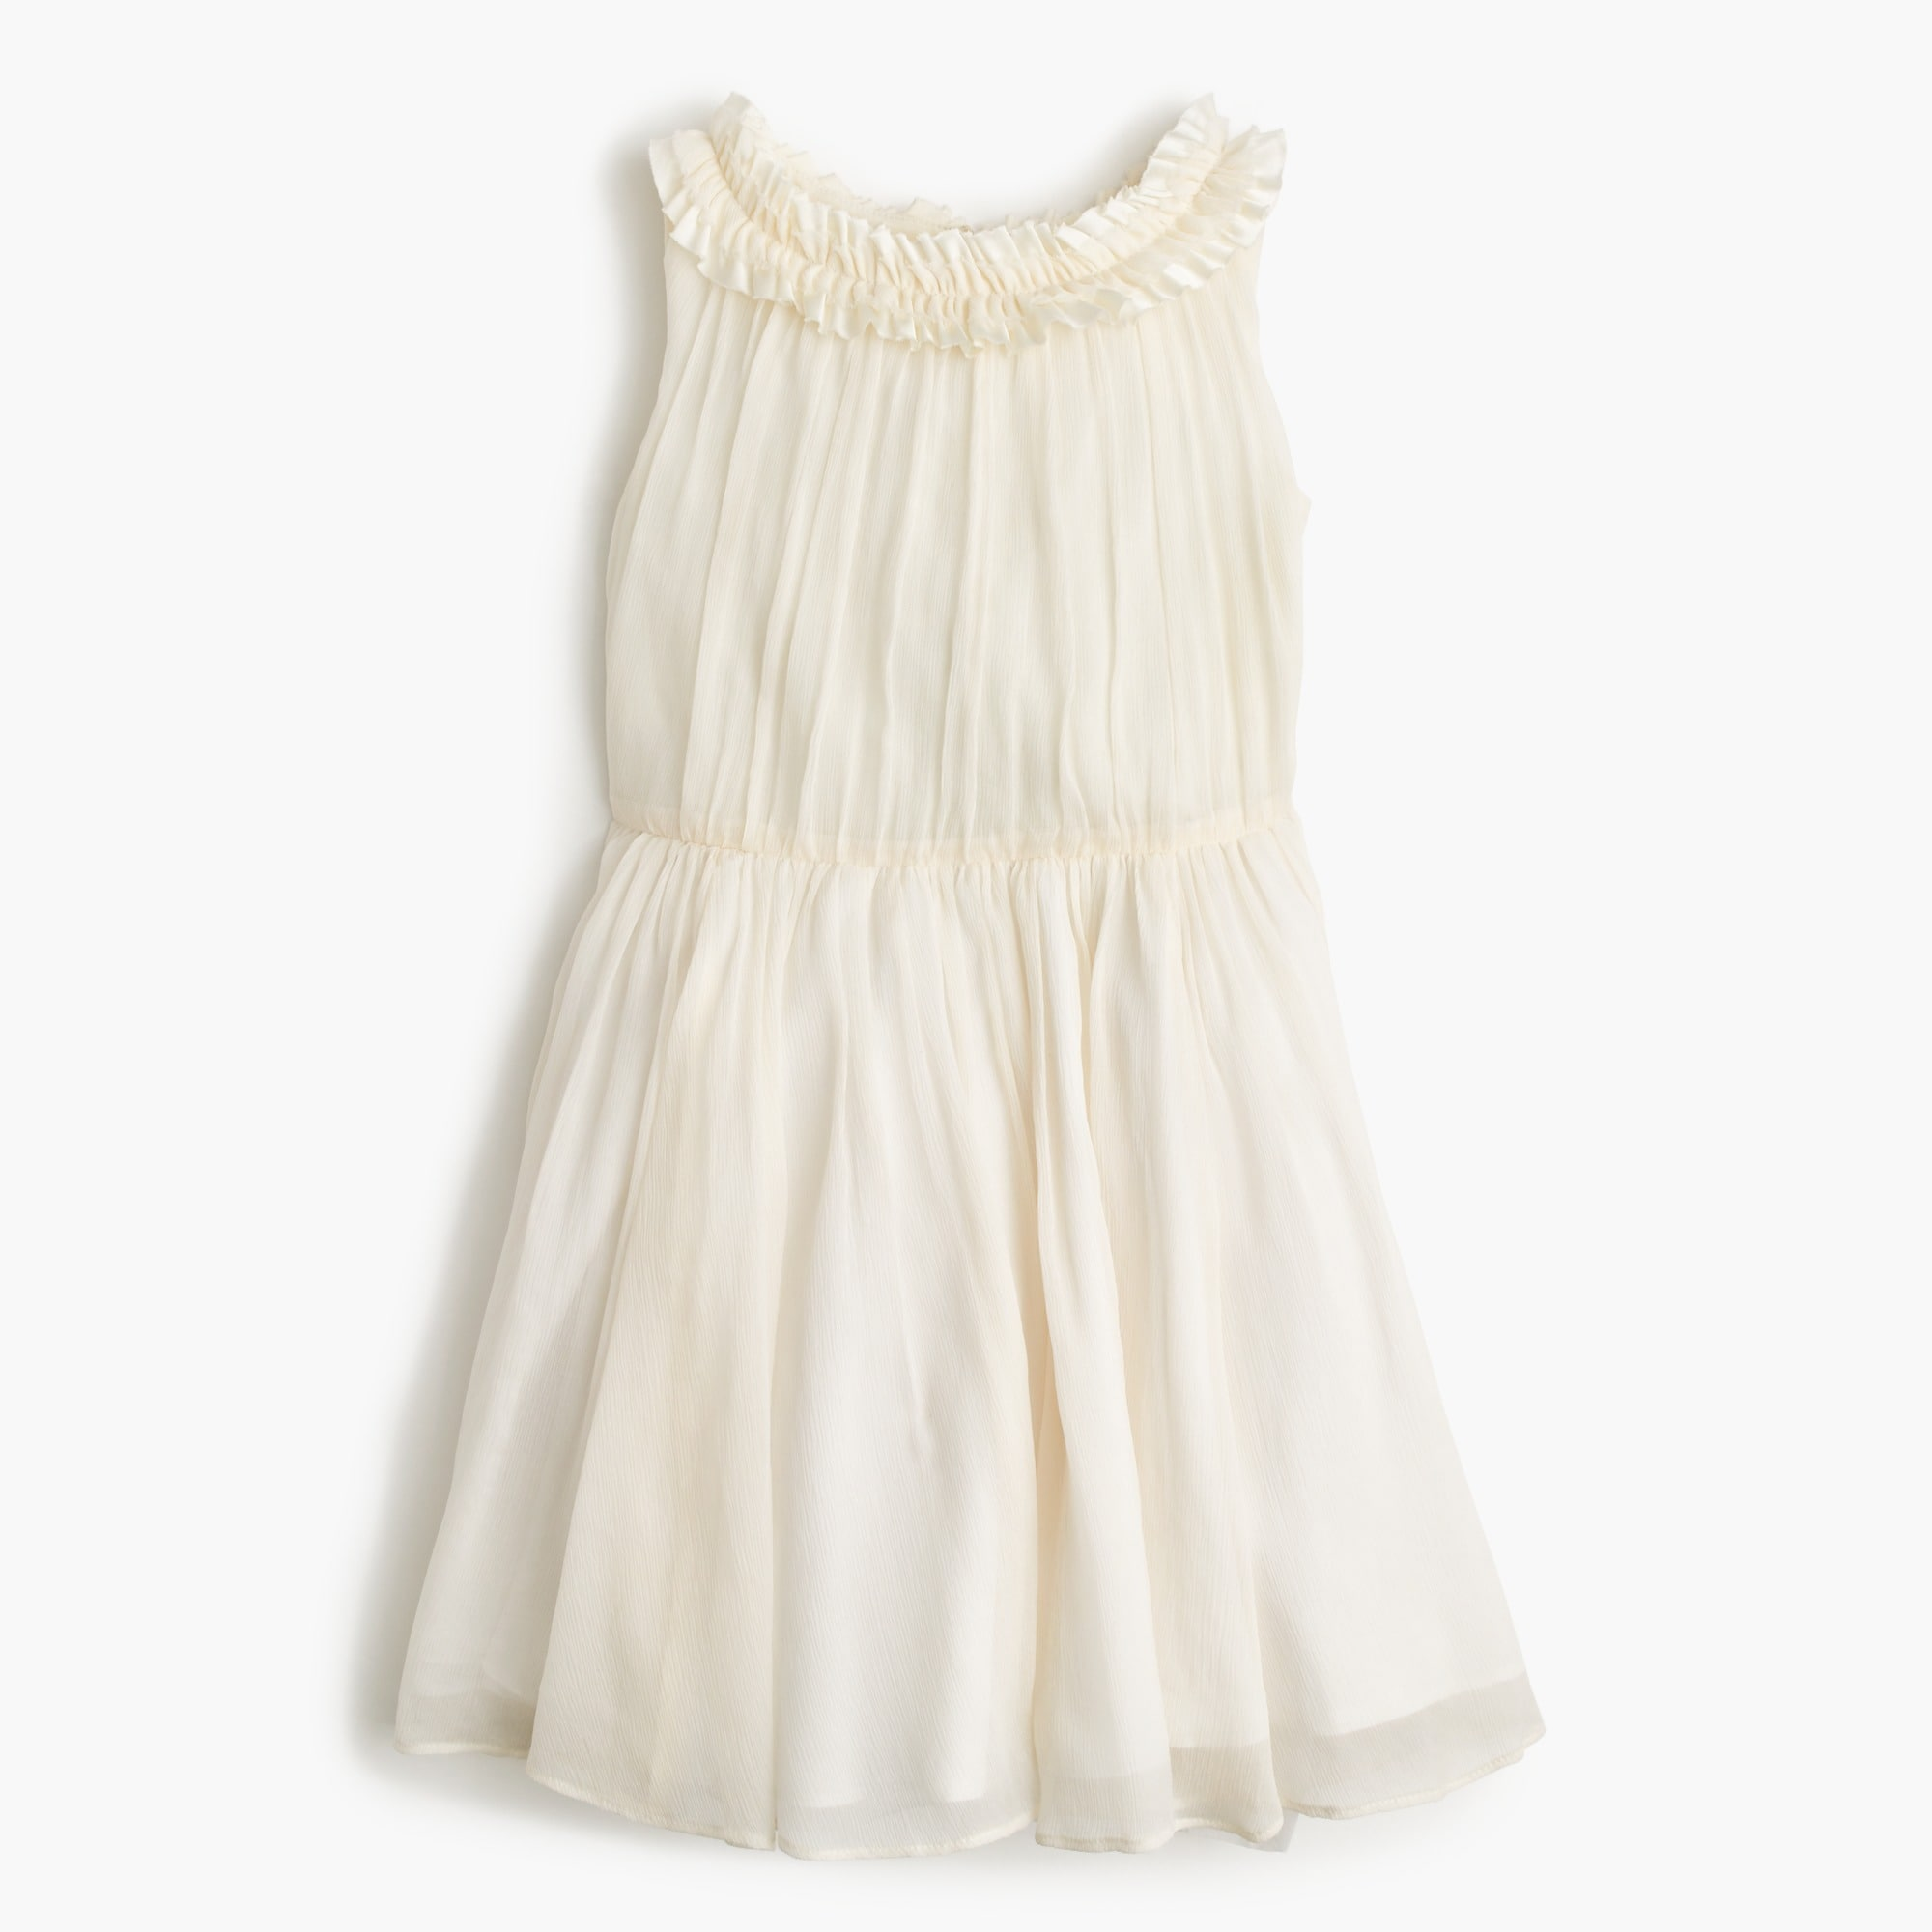 Girls' pleated ruffle dress in crinkle chiffon girl dresses c